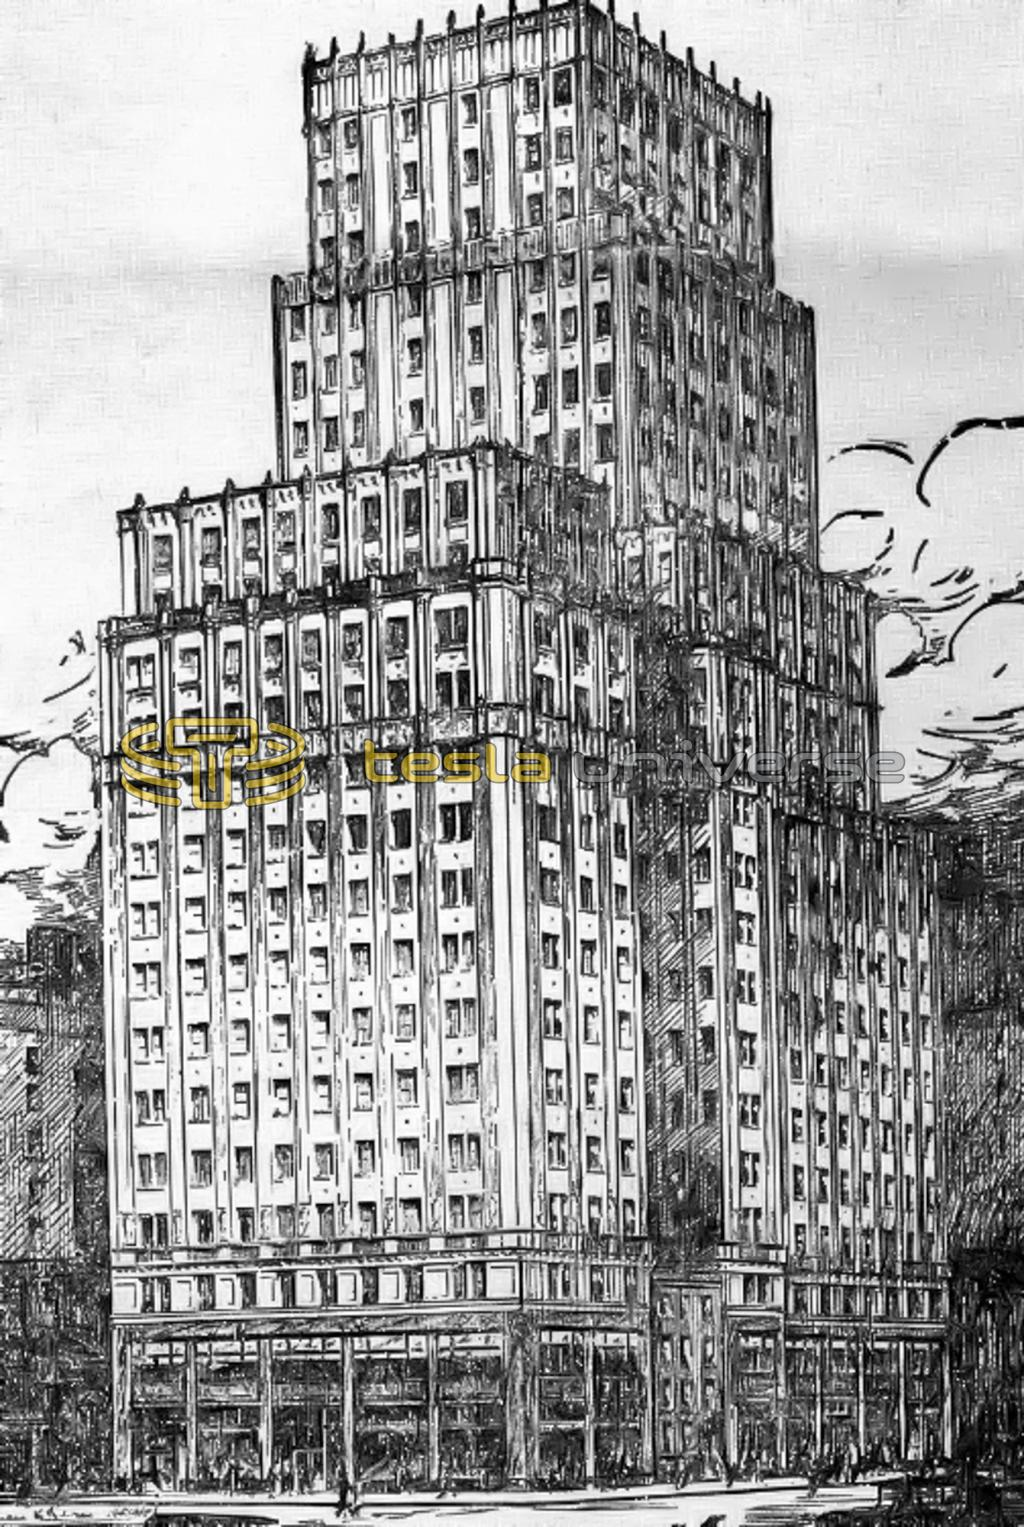 A rendering of the building at 350 Madison Ave. (Borden Building) where Tesla once had an office